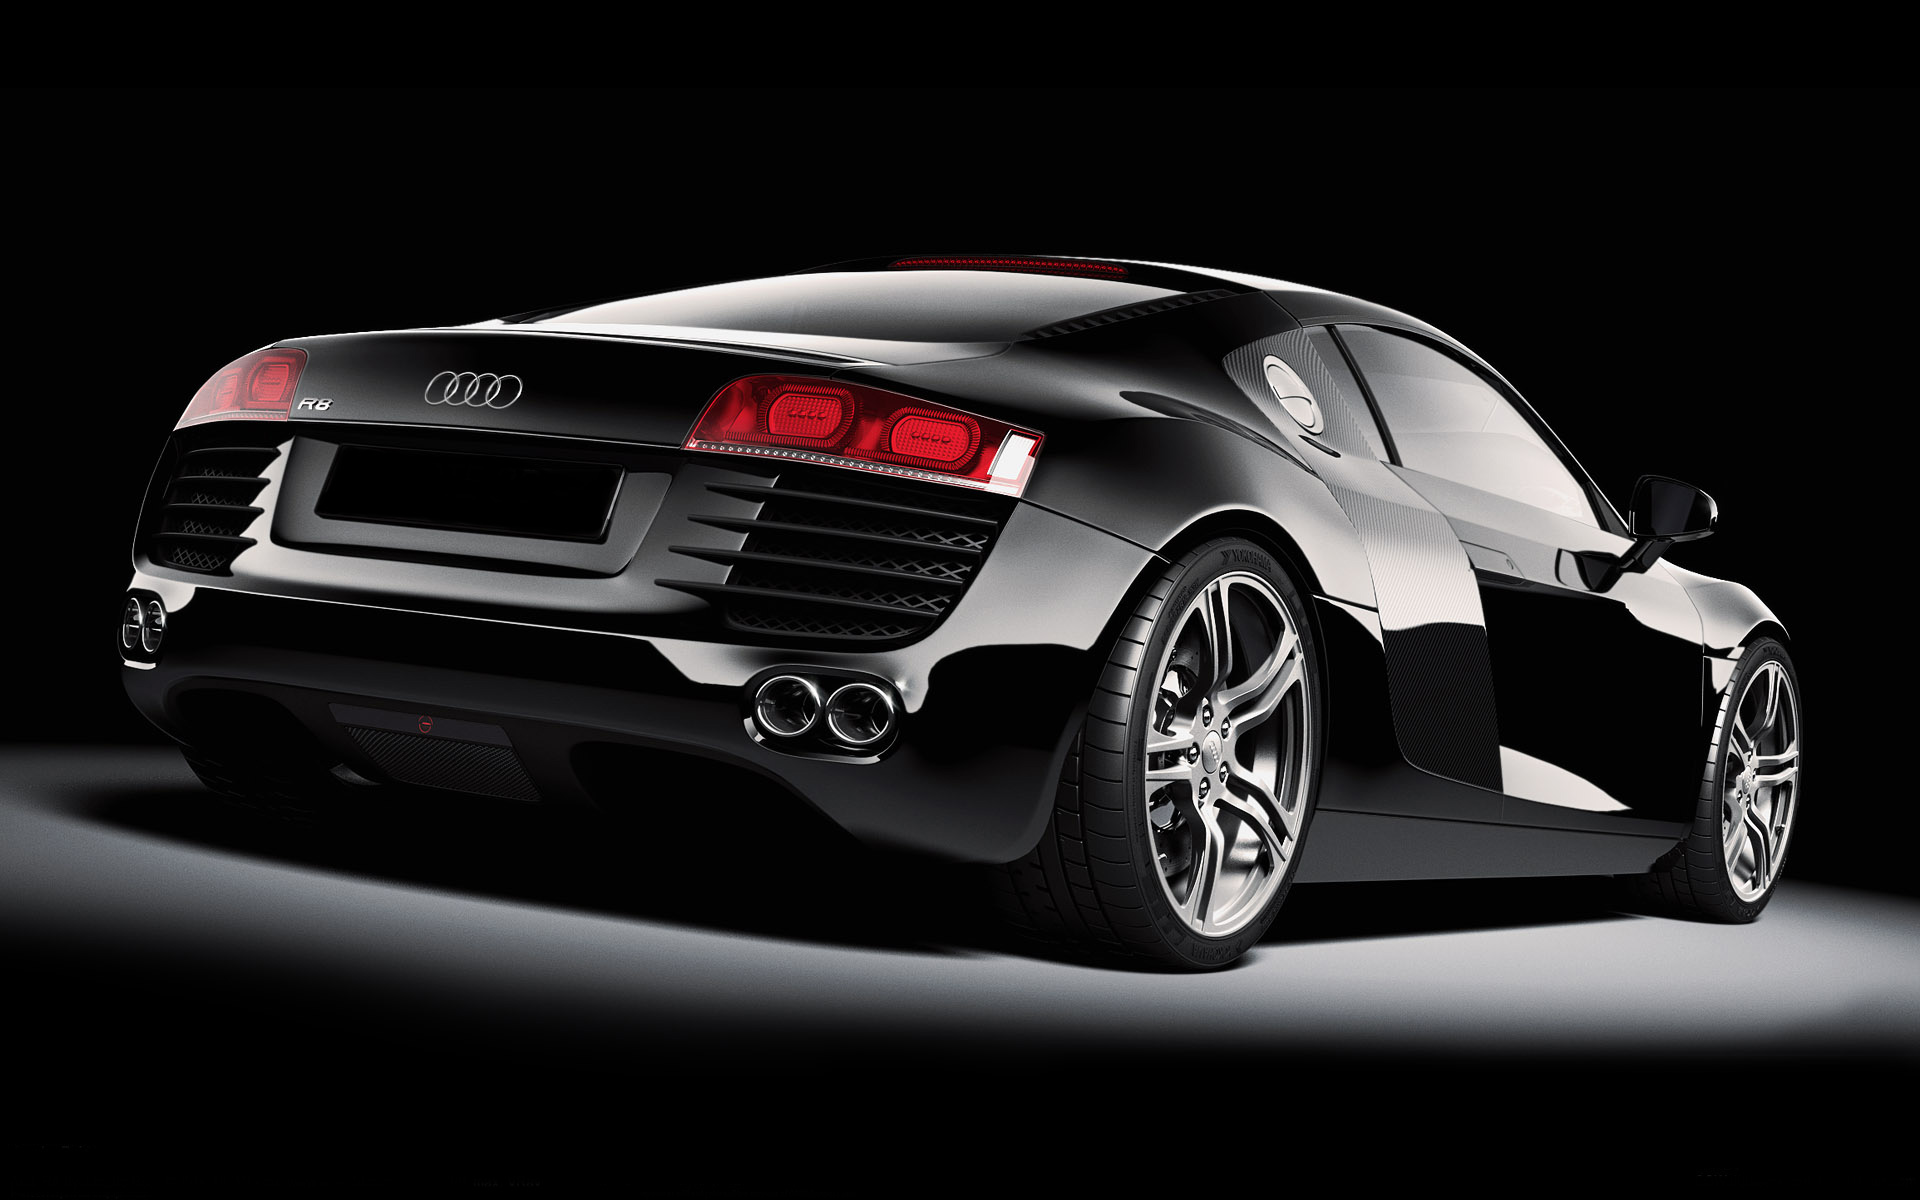 Images Of Audi Cars audi car images